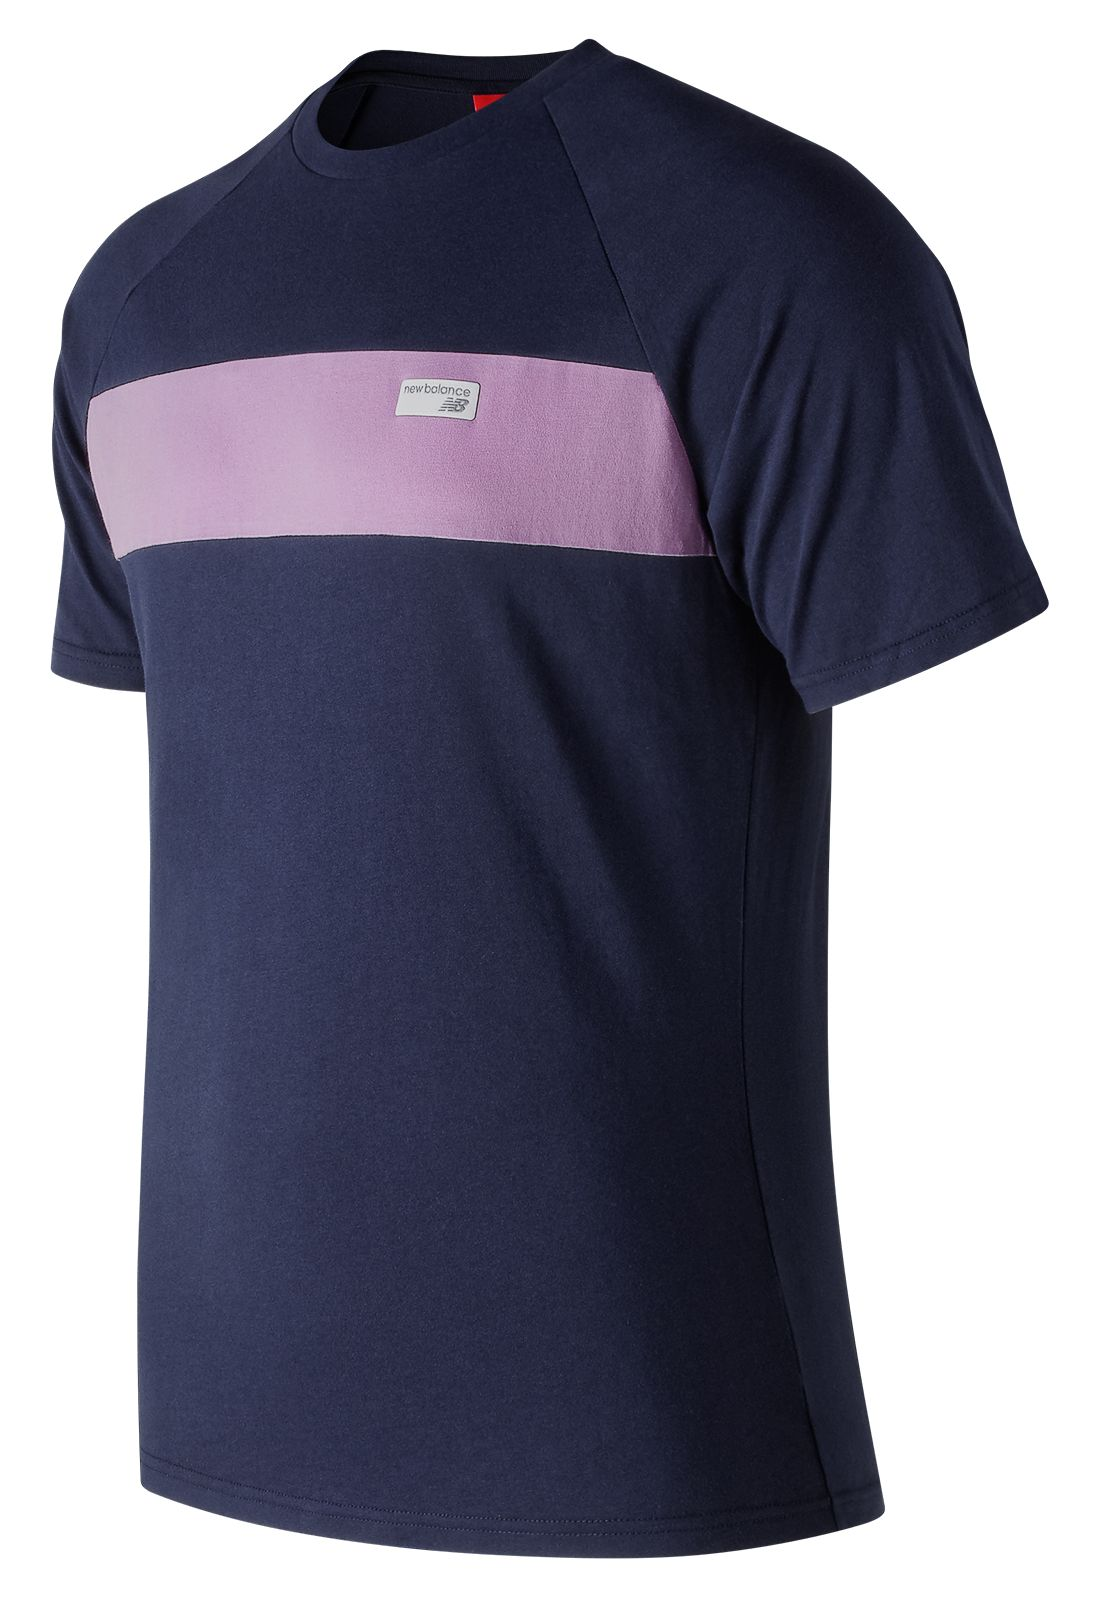 Men's NB Athletics Raglan Tee